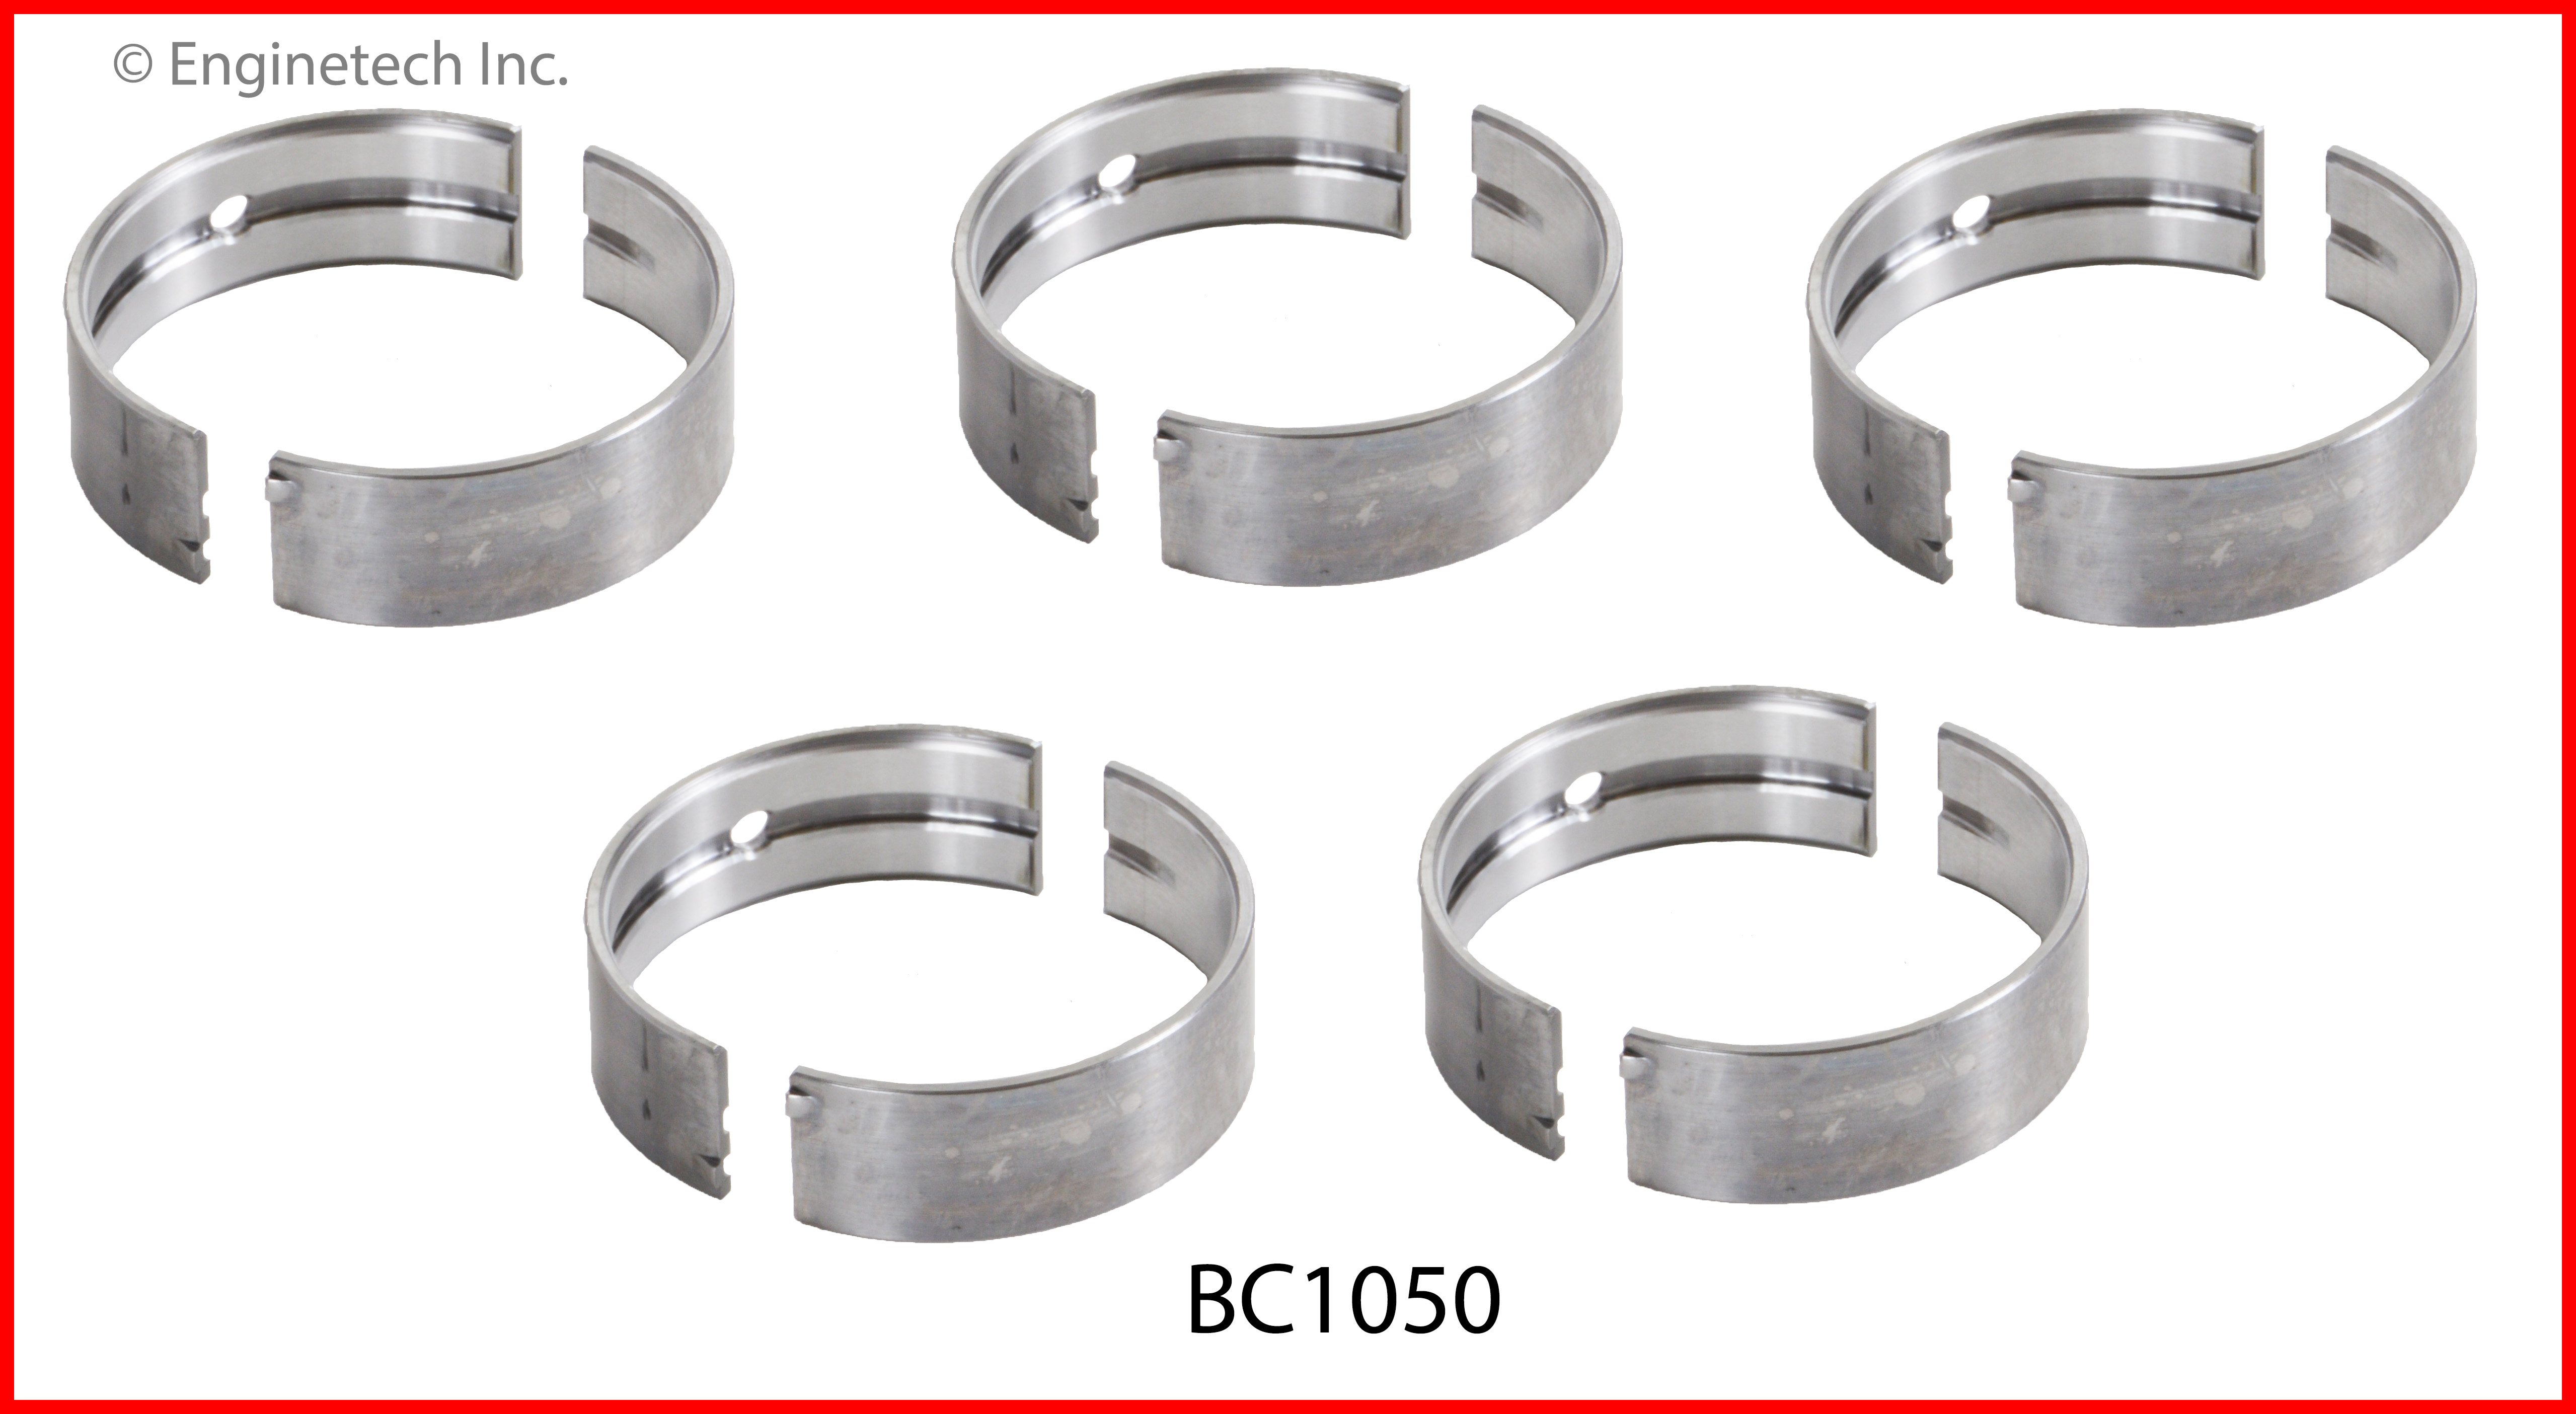 BC1050 Bearing Set - Main Enginetech